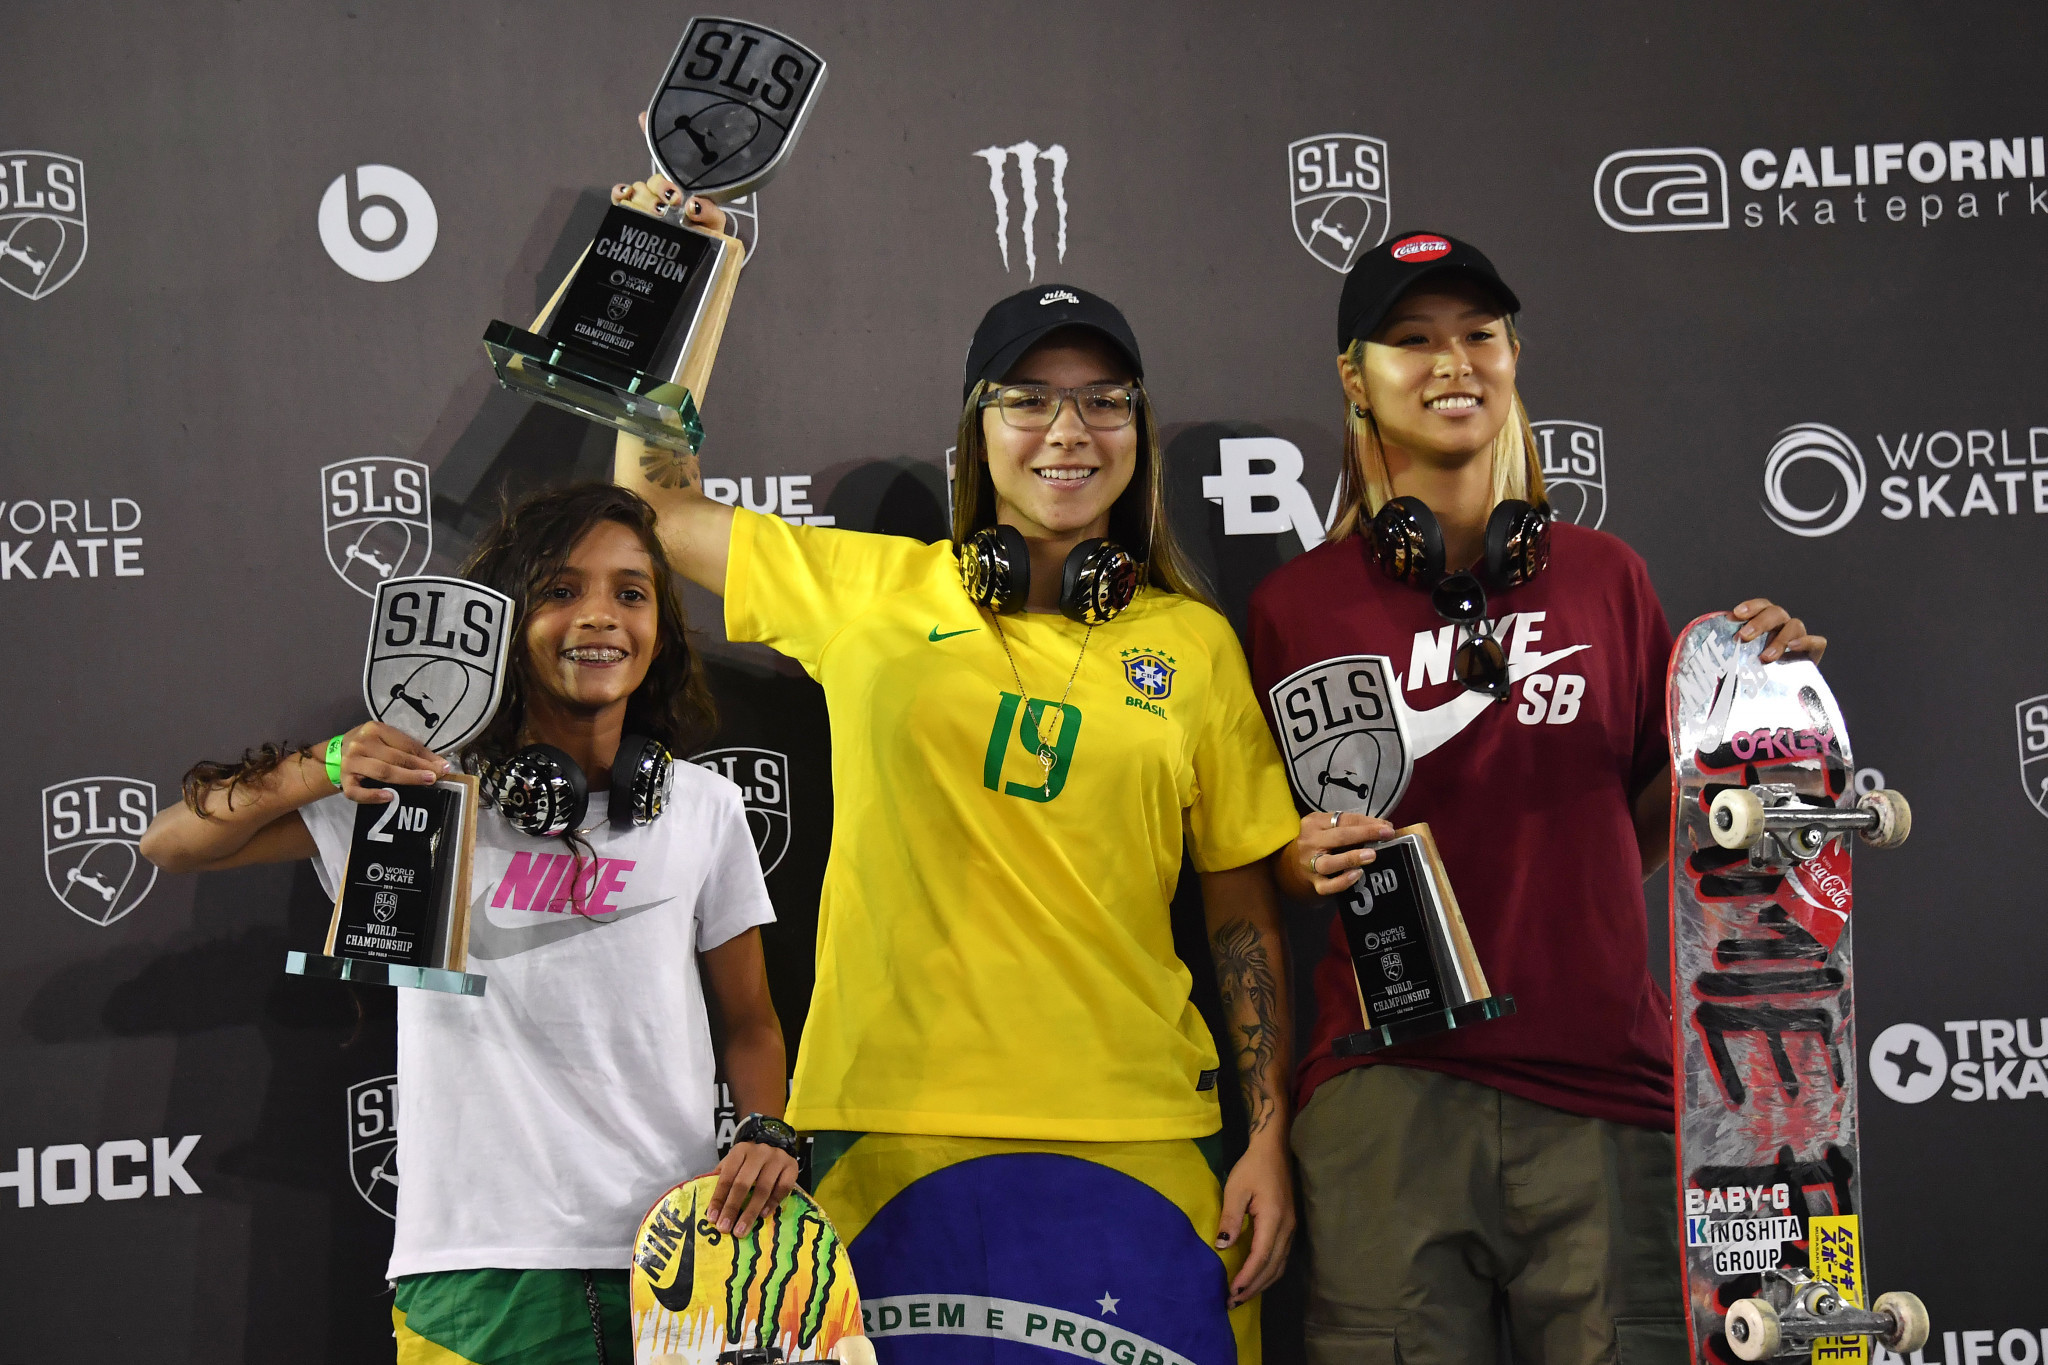 The women's podium from the 2019 World Championship in São Paulo was headed by Brazil's Pamela Rosa, centre, who is set to compete on the WS WLS World Pro Tour ©Getty Images